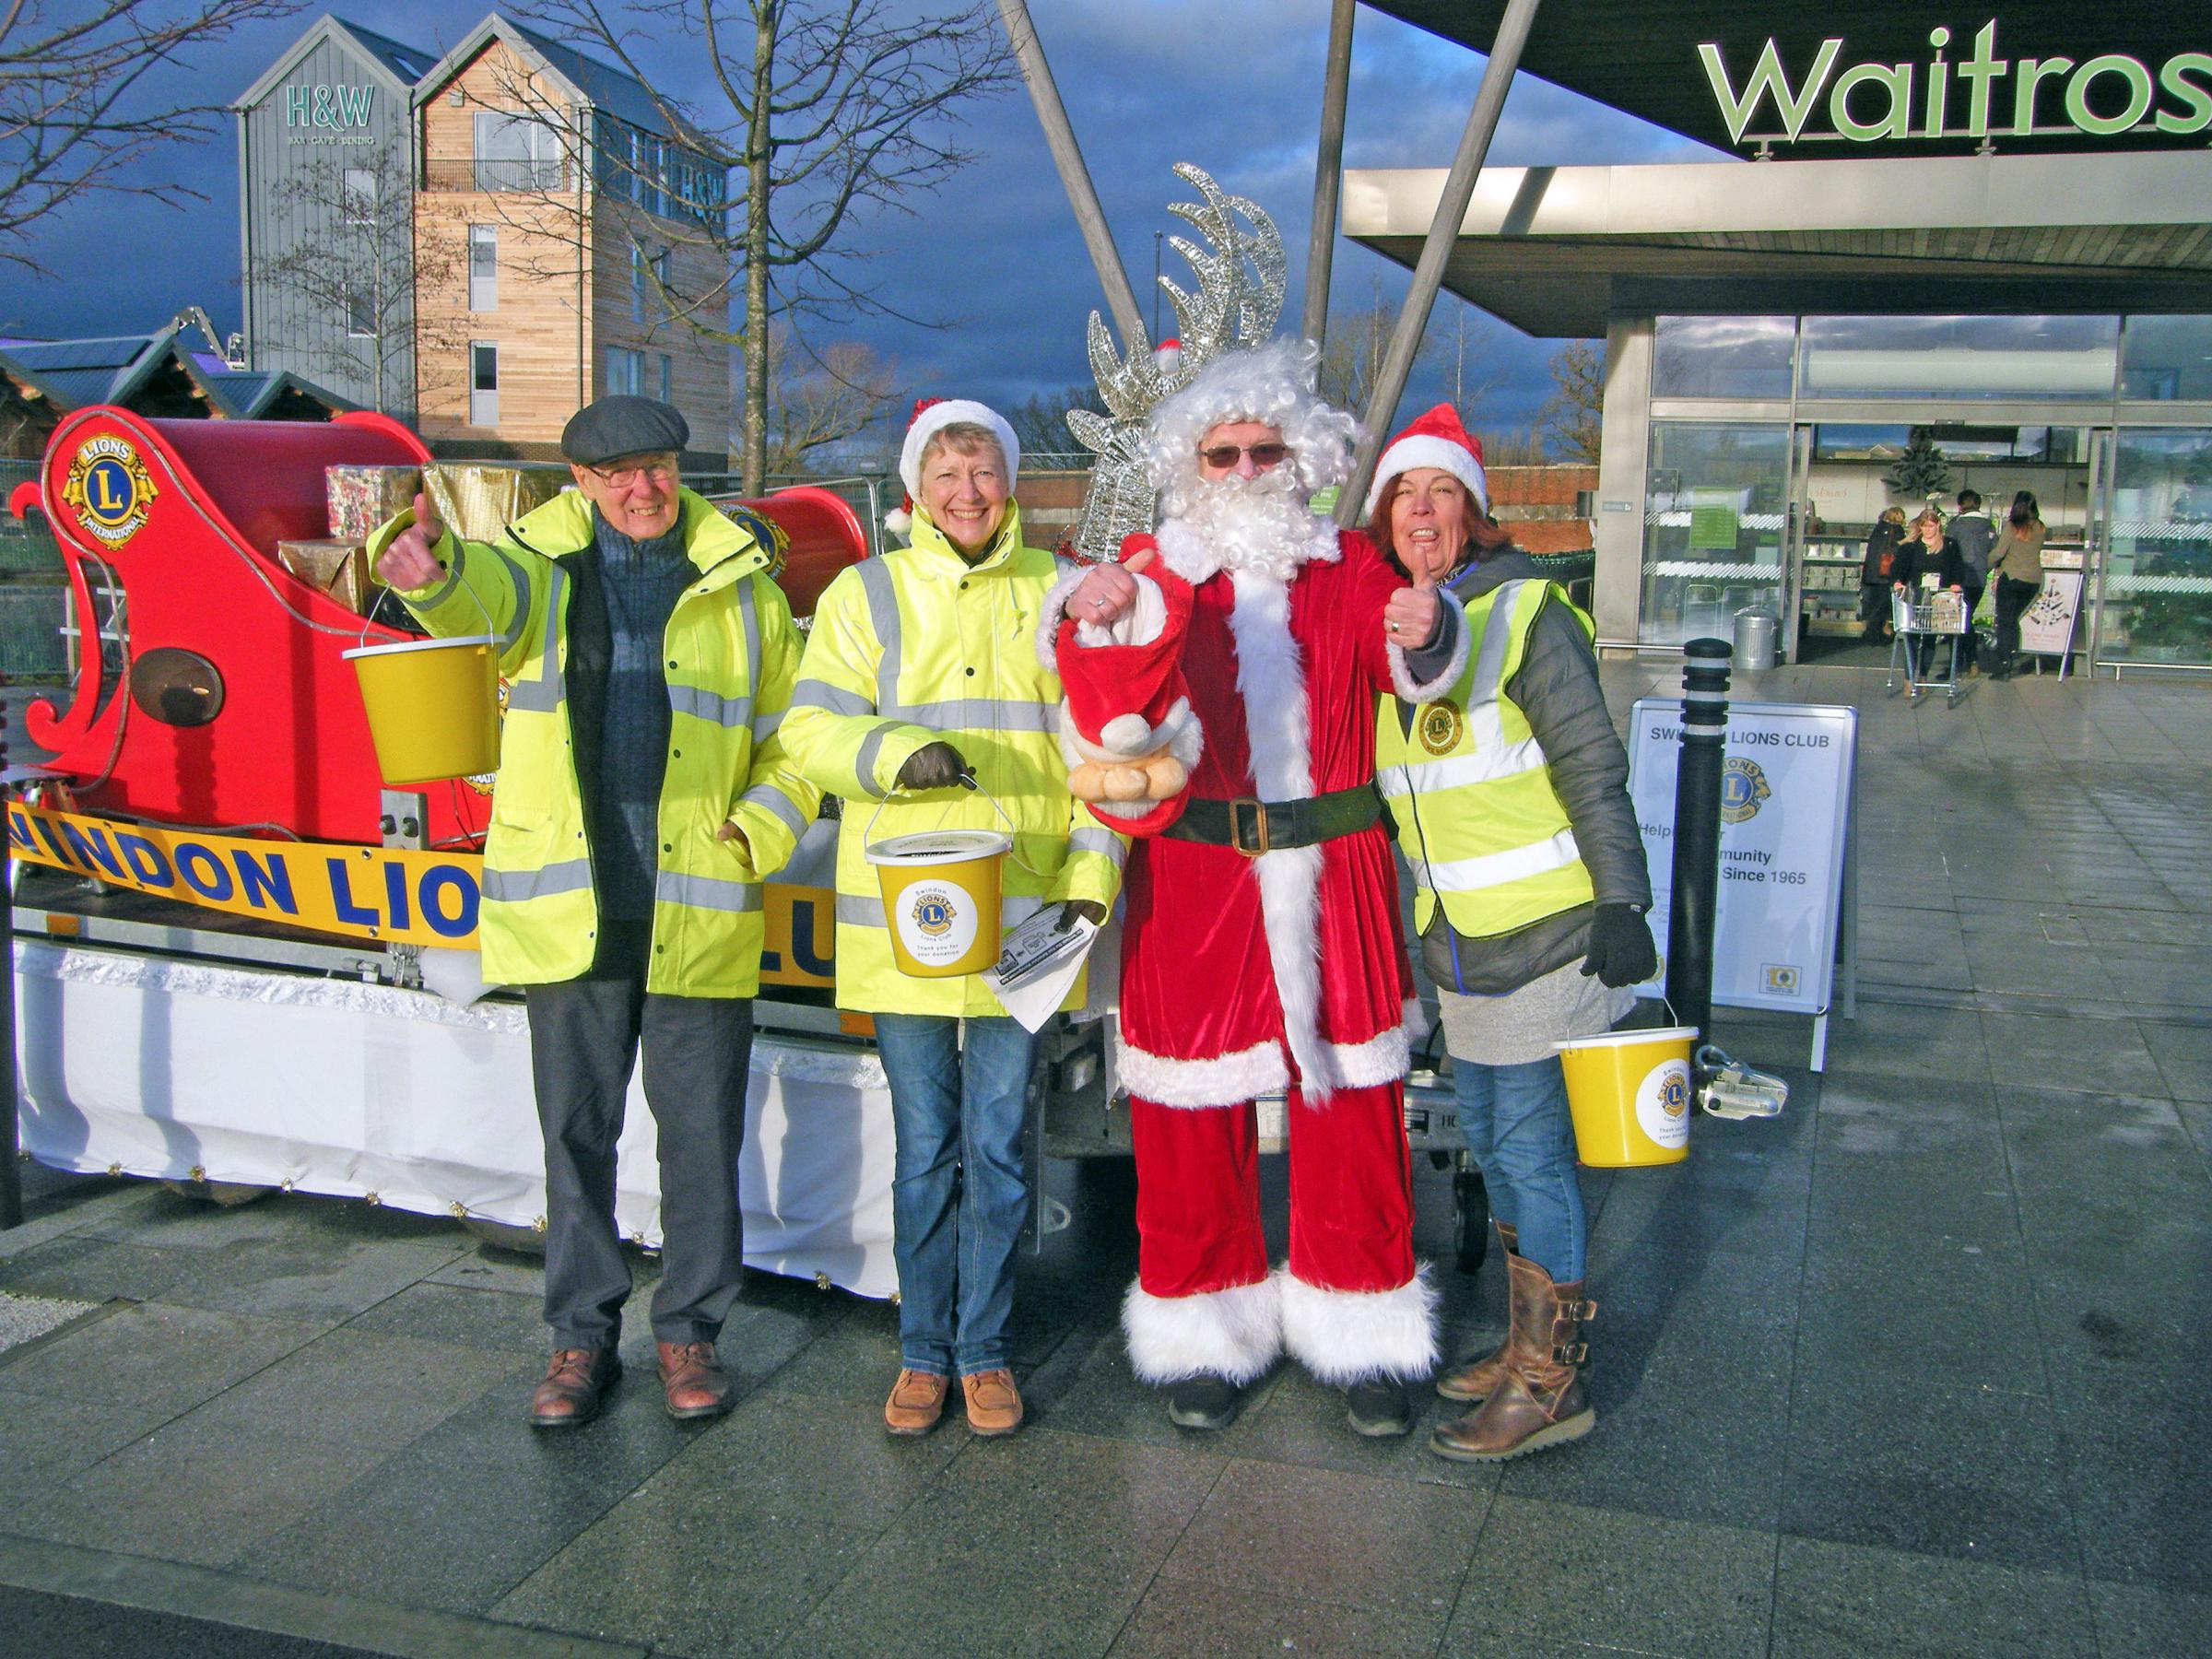 Alan Mitchell with other Swindon Lions members collecting money for the appeal